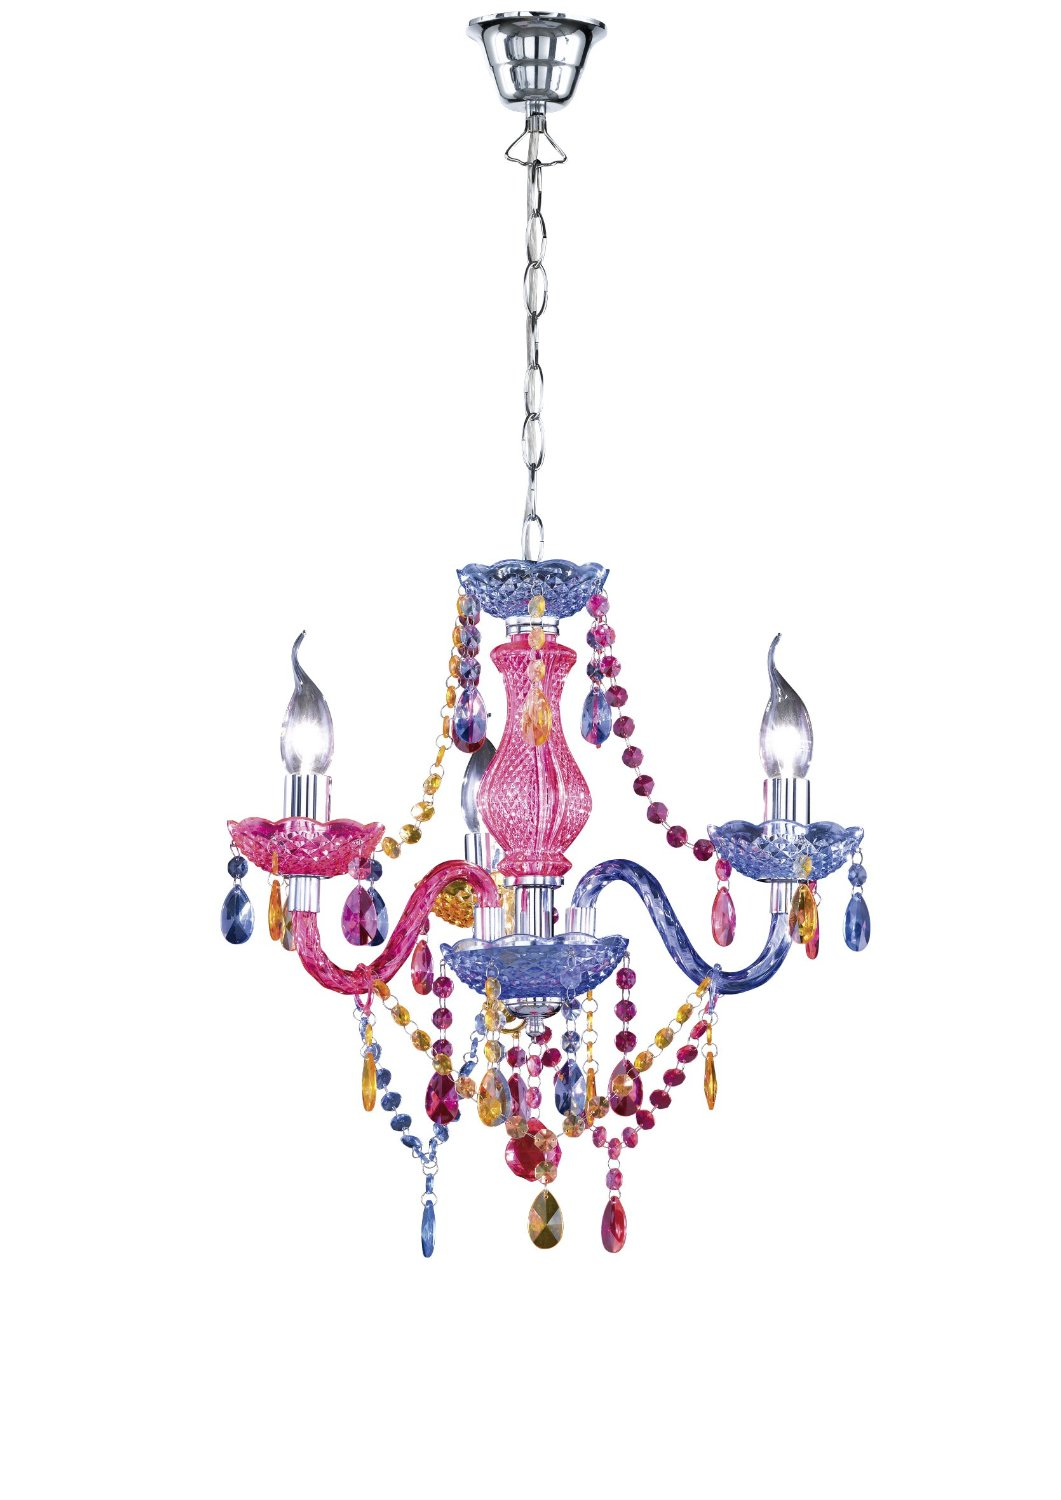 Duqaa elegant design multicolored chandelier infoduqaa aloadofball Choice Image